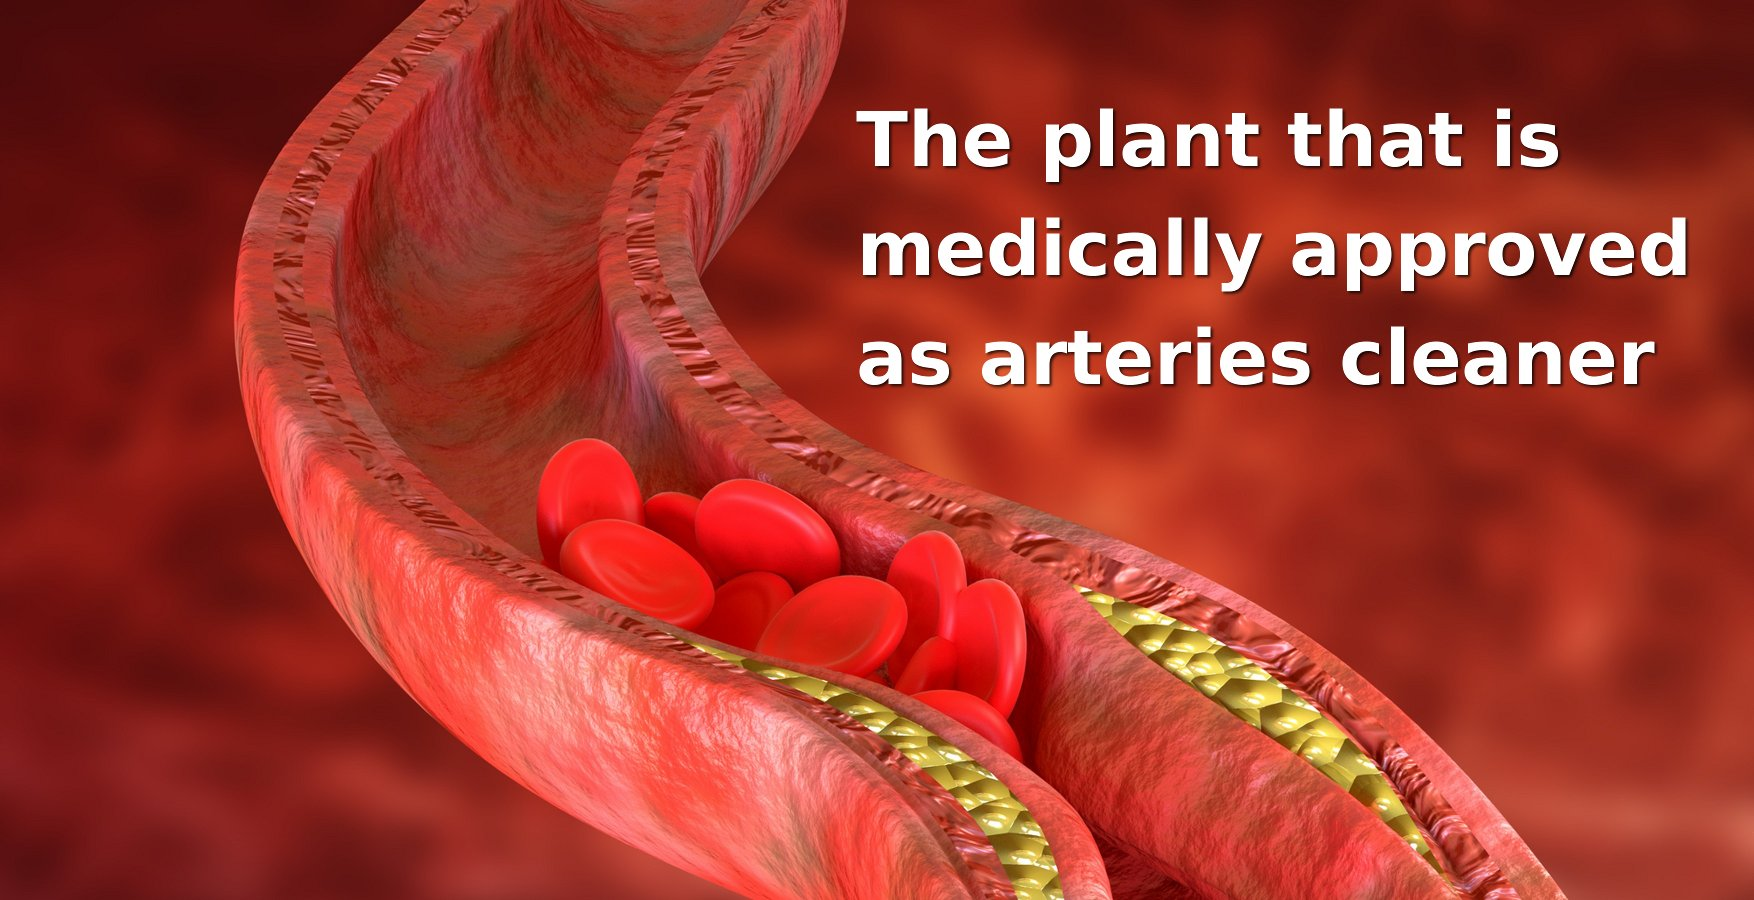 The plant that has been clinically proven to cleanse the arteries in the body